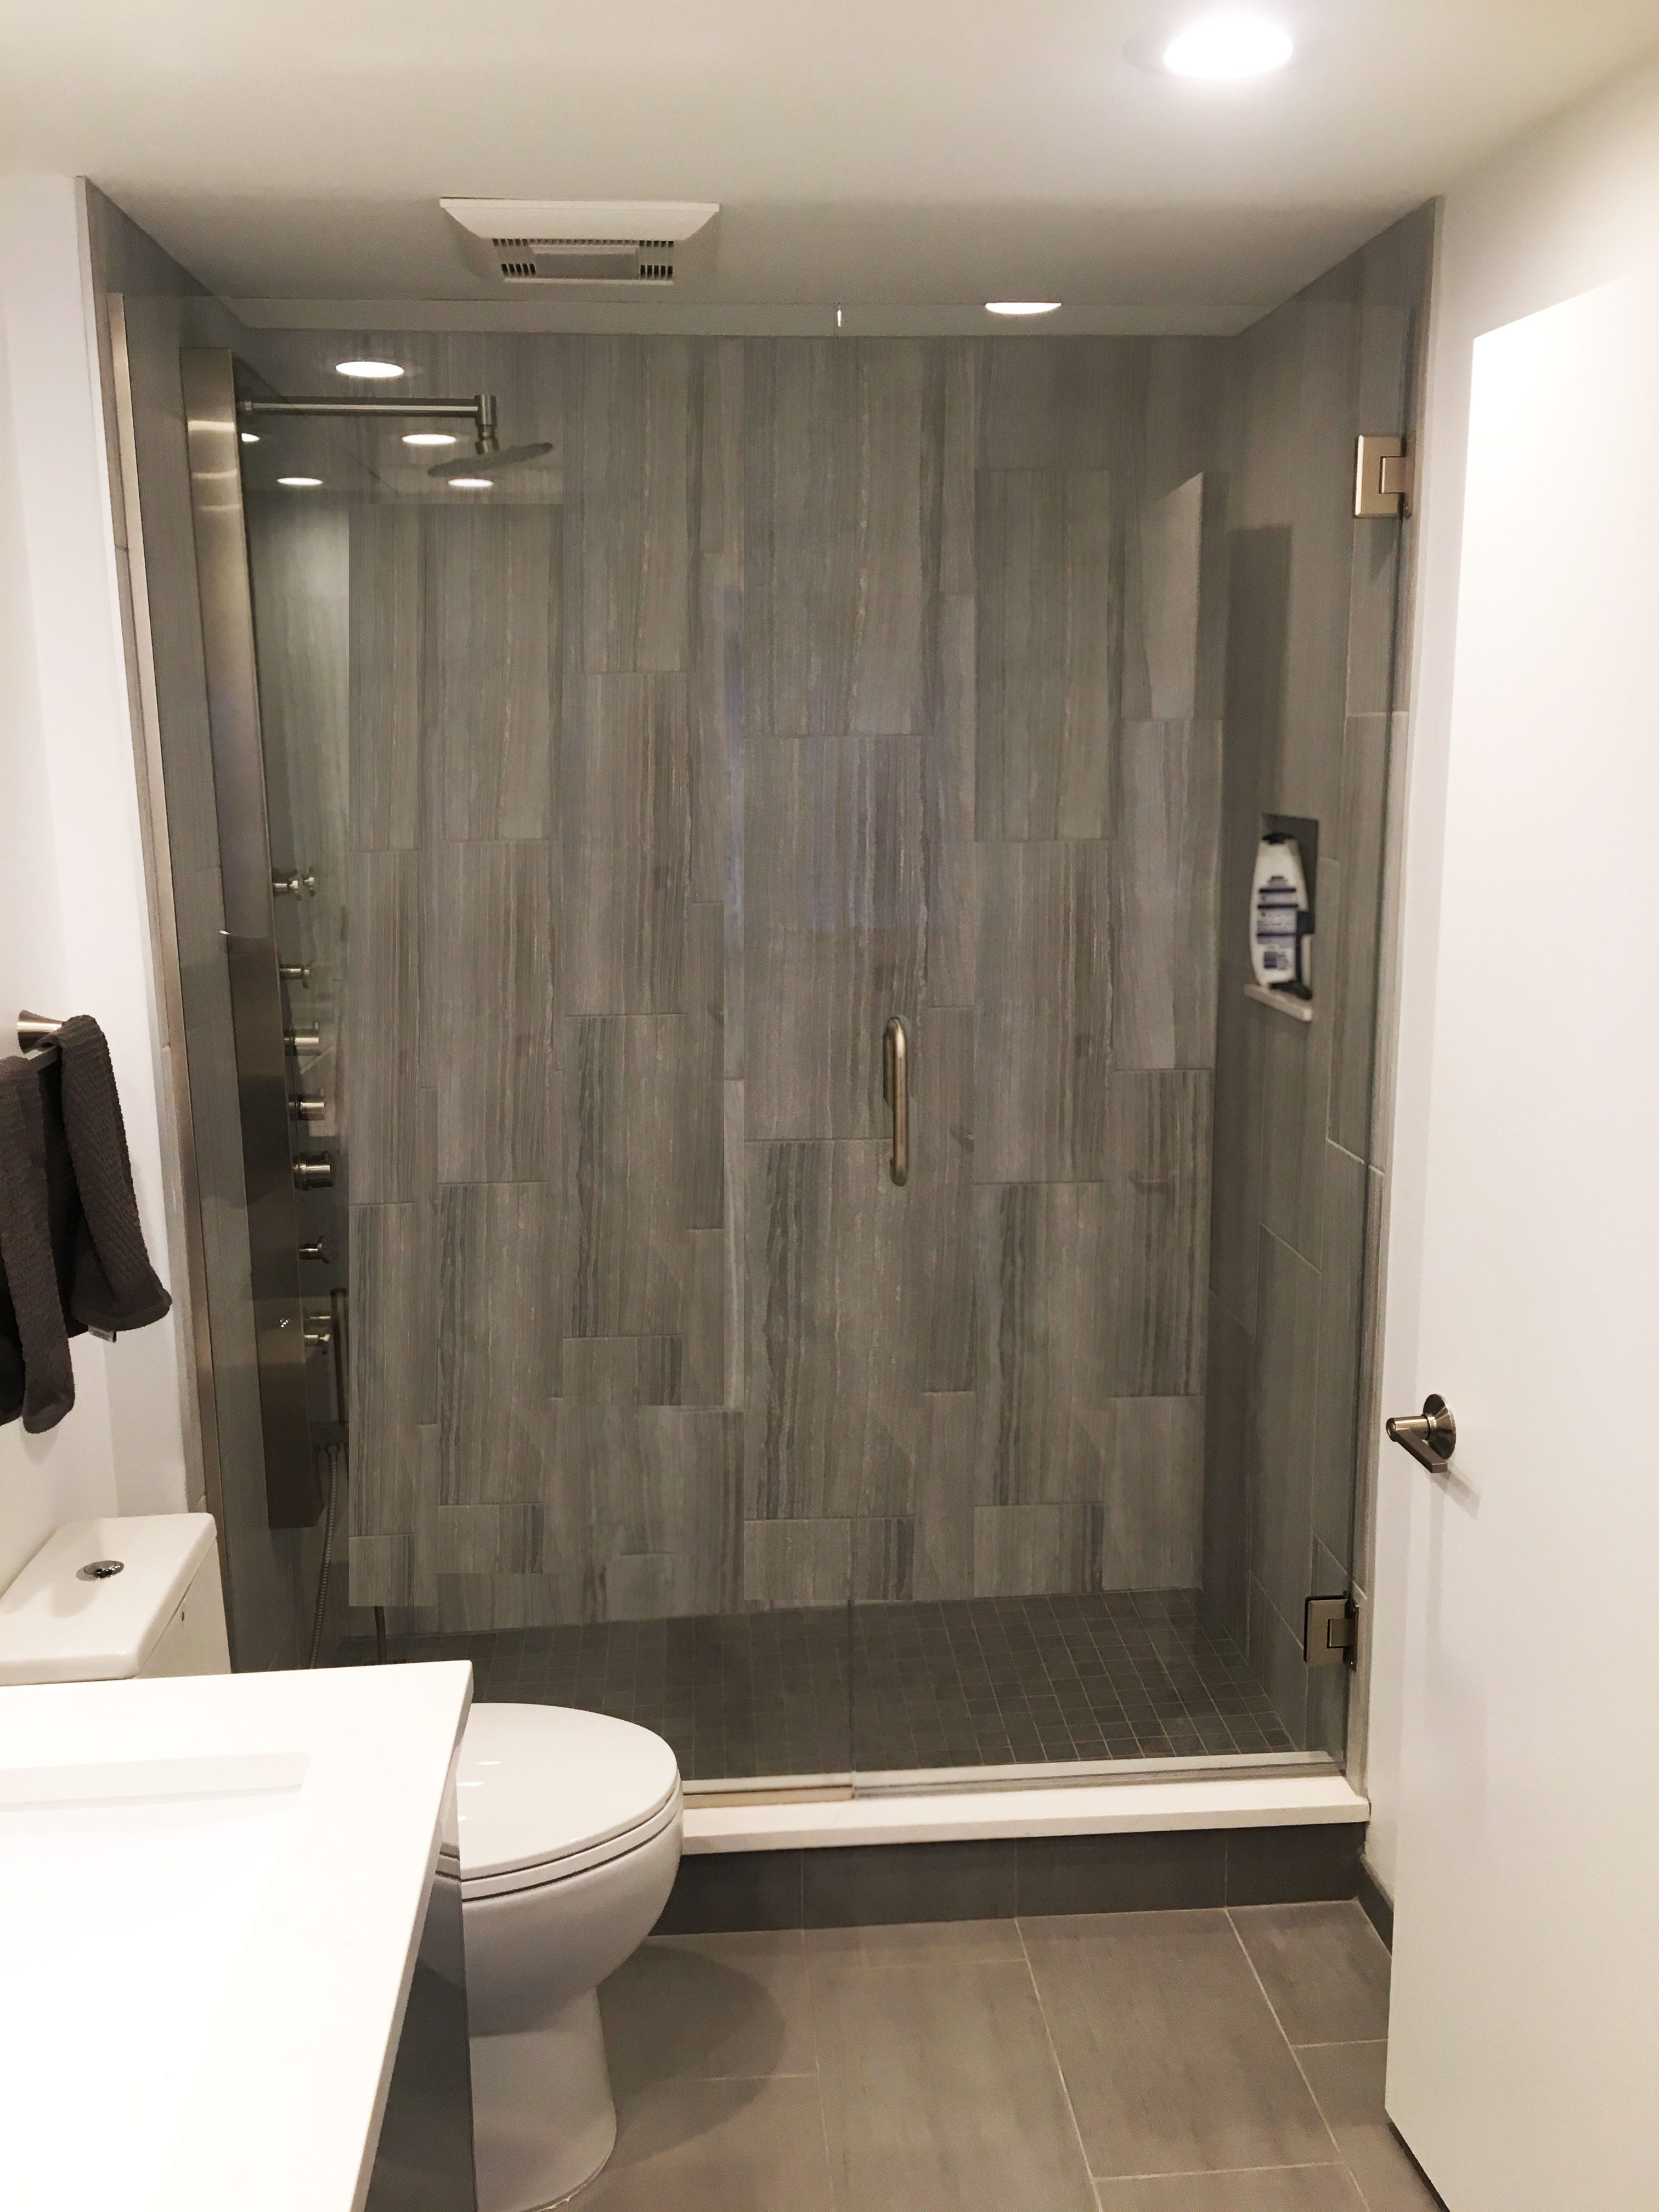 Modern Bathroom Renovation with Stainless Steel Fixtures and Ceramic Tile Surround